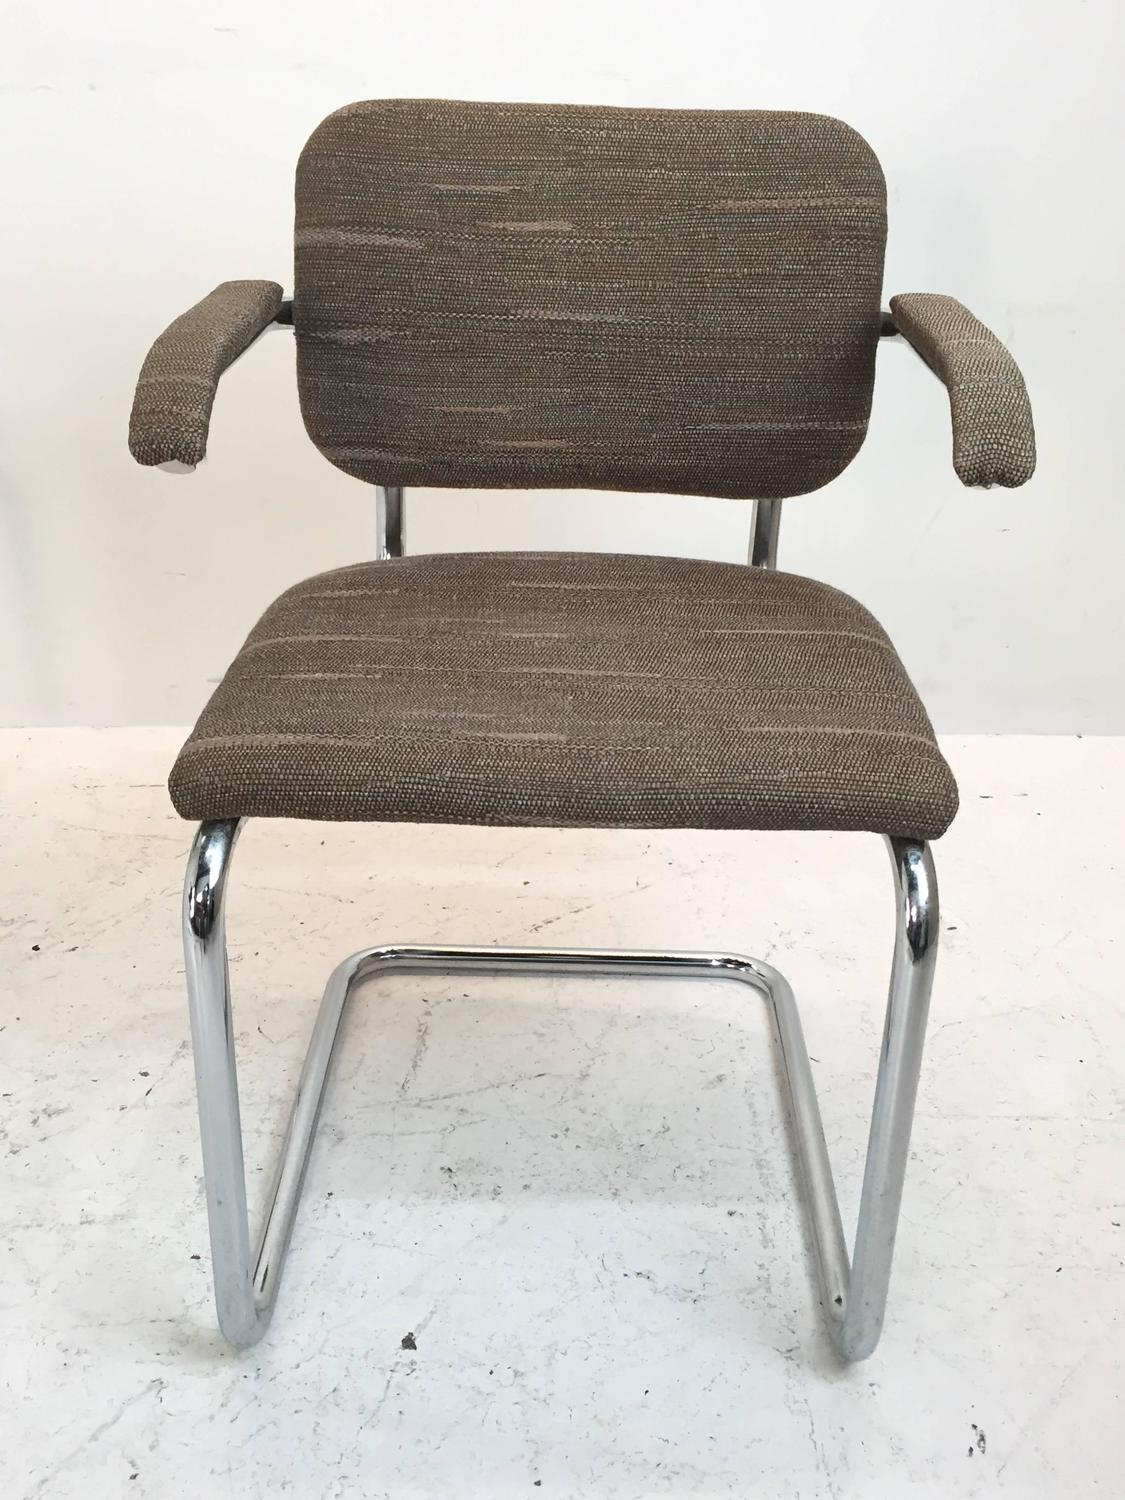 marcel breuer cesca chair with armrests walmart beach chairs on sale set of five for knoll